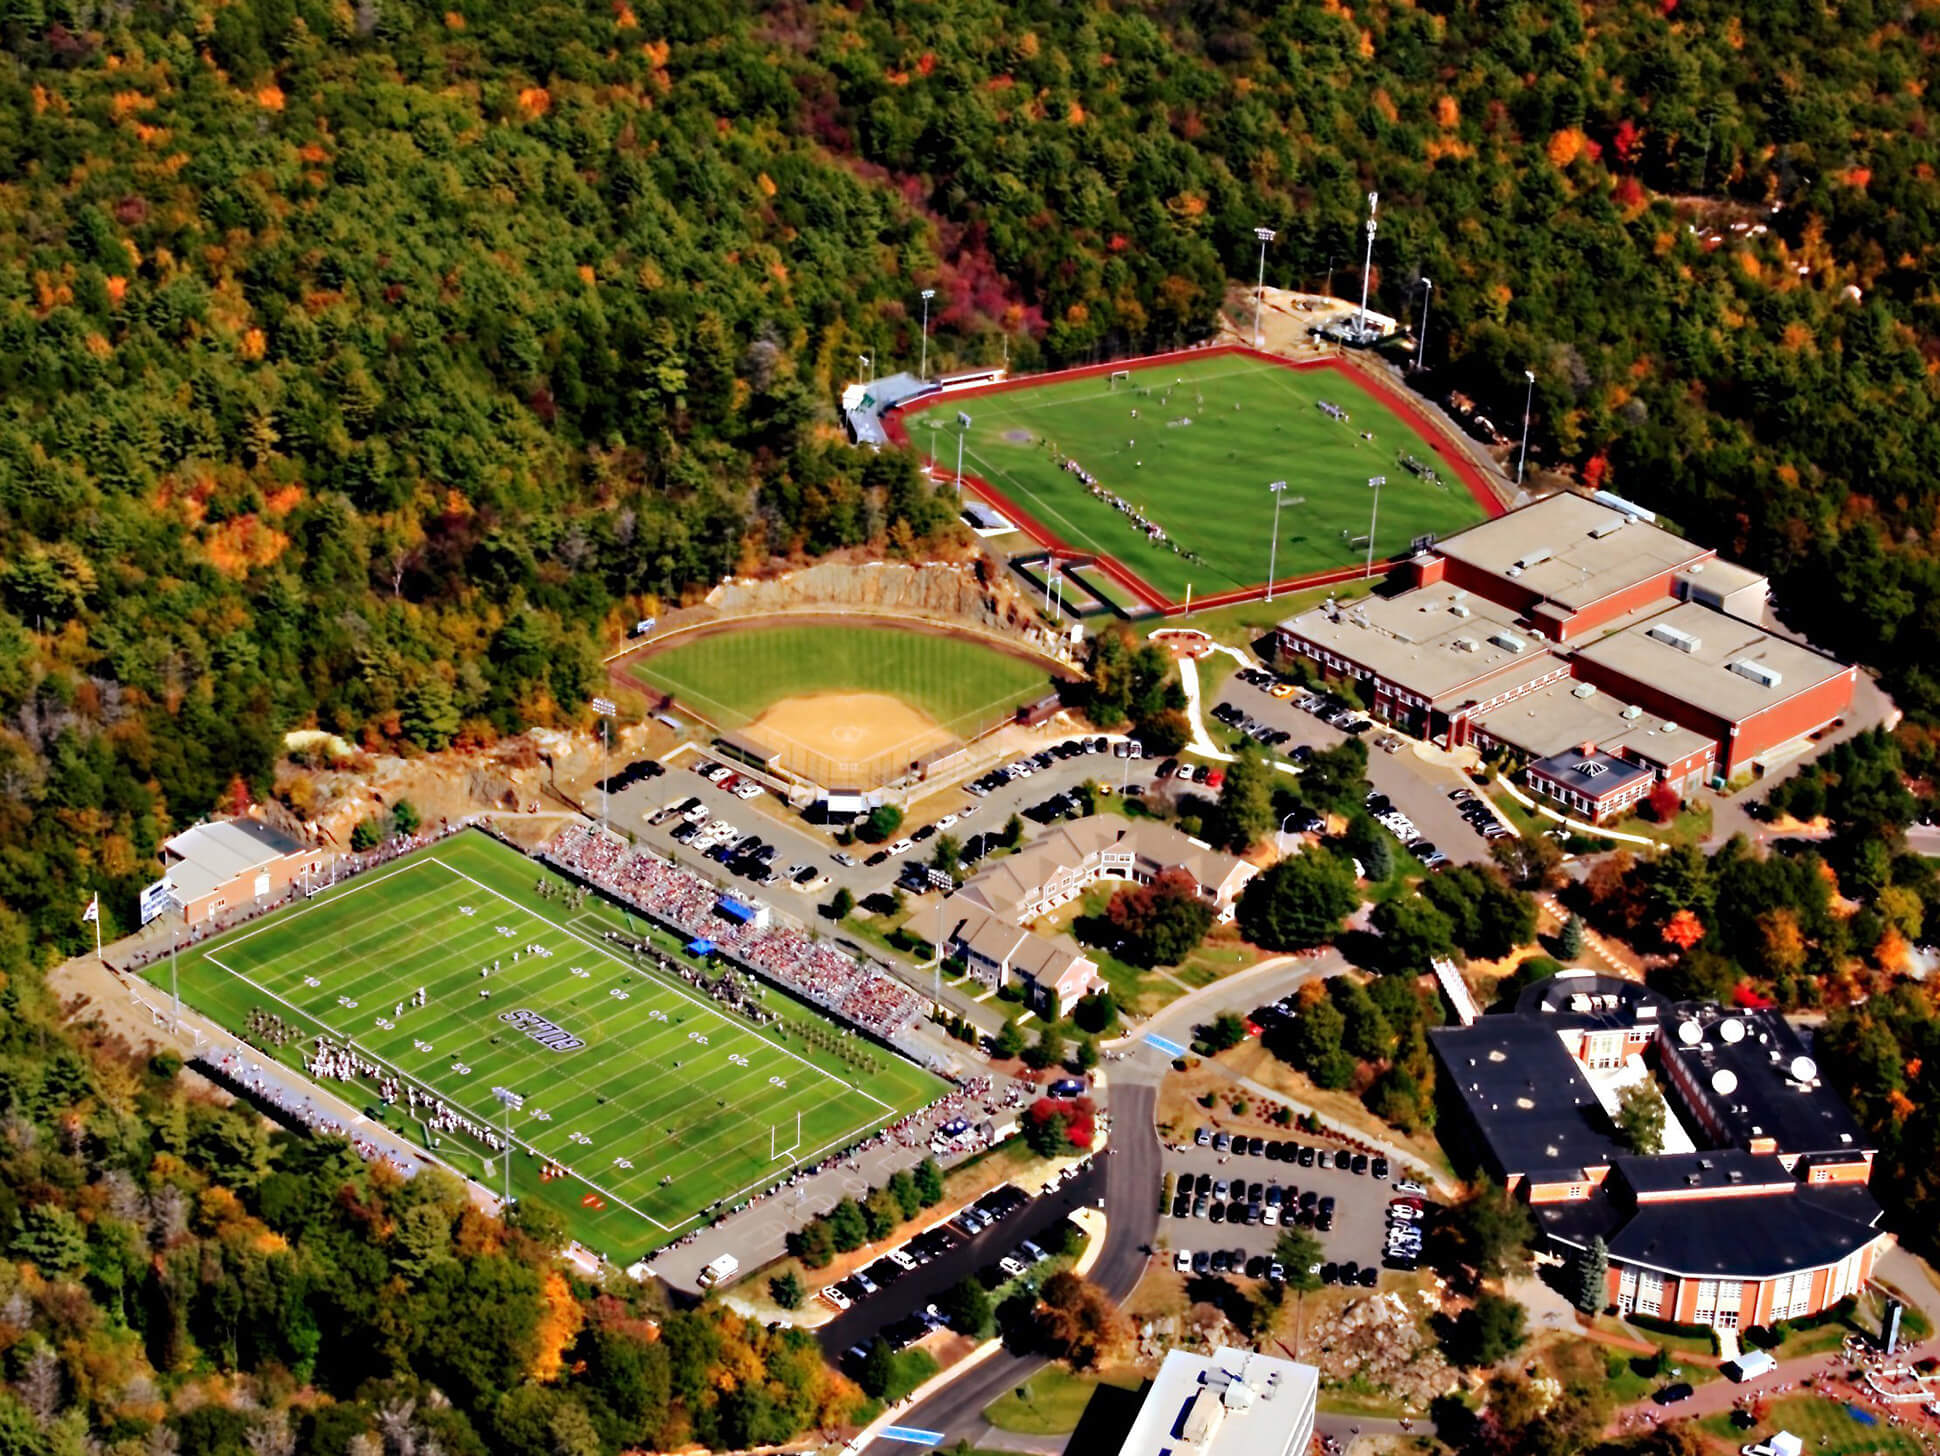 aerial shot of endicott athletic fields and facilities